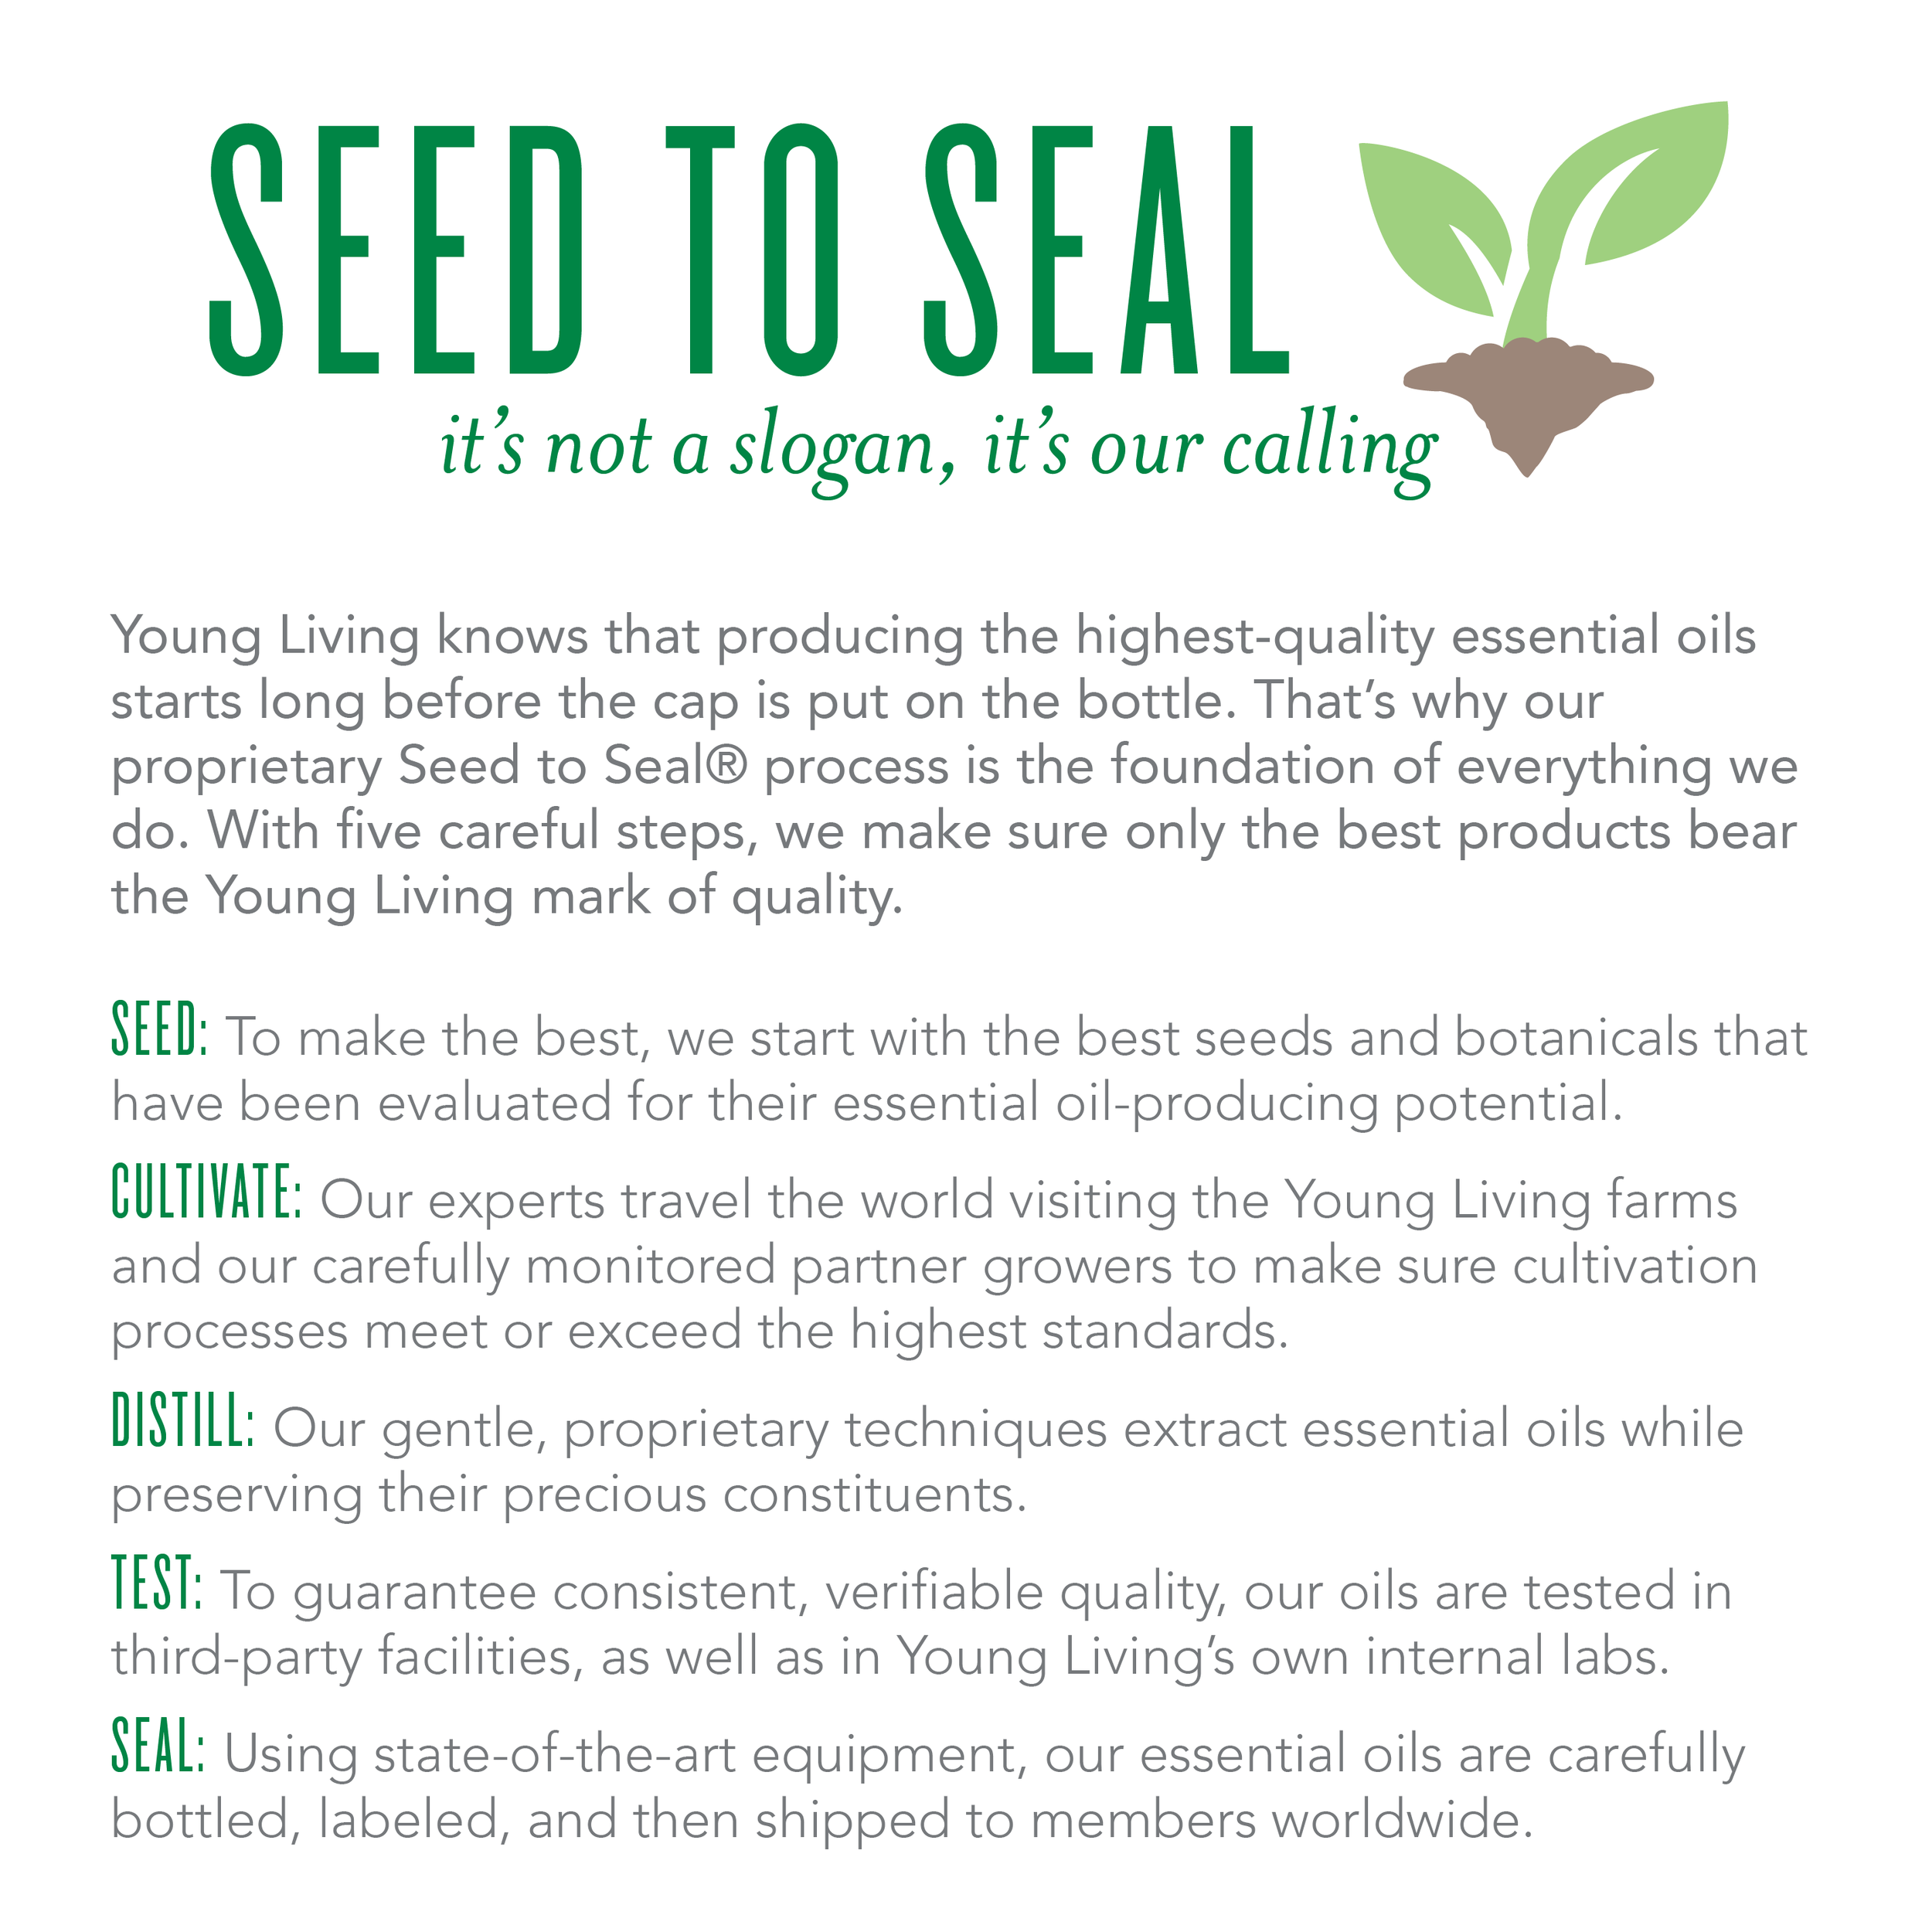 ylu-seed-to-seal-infographic.png